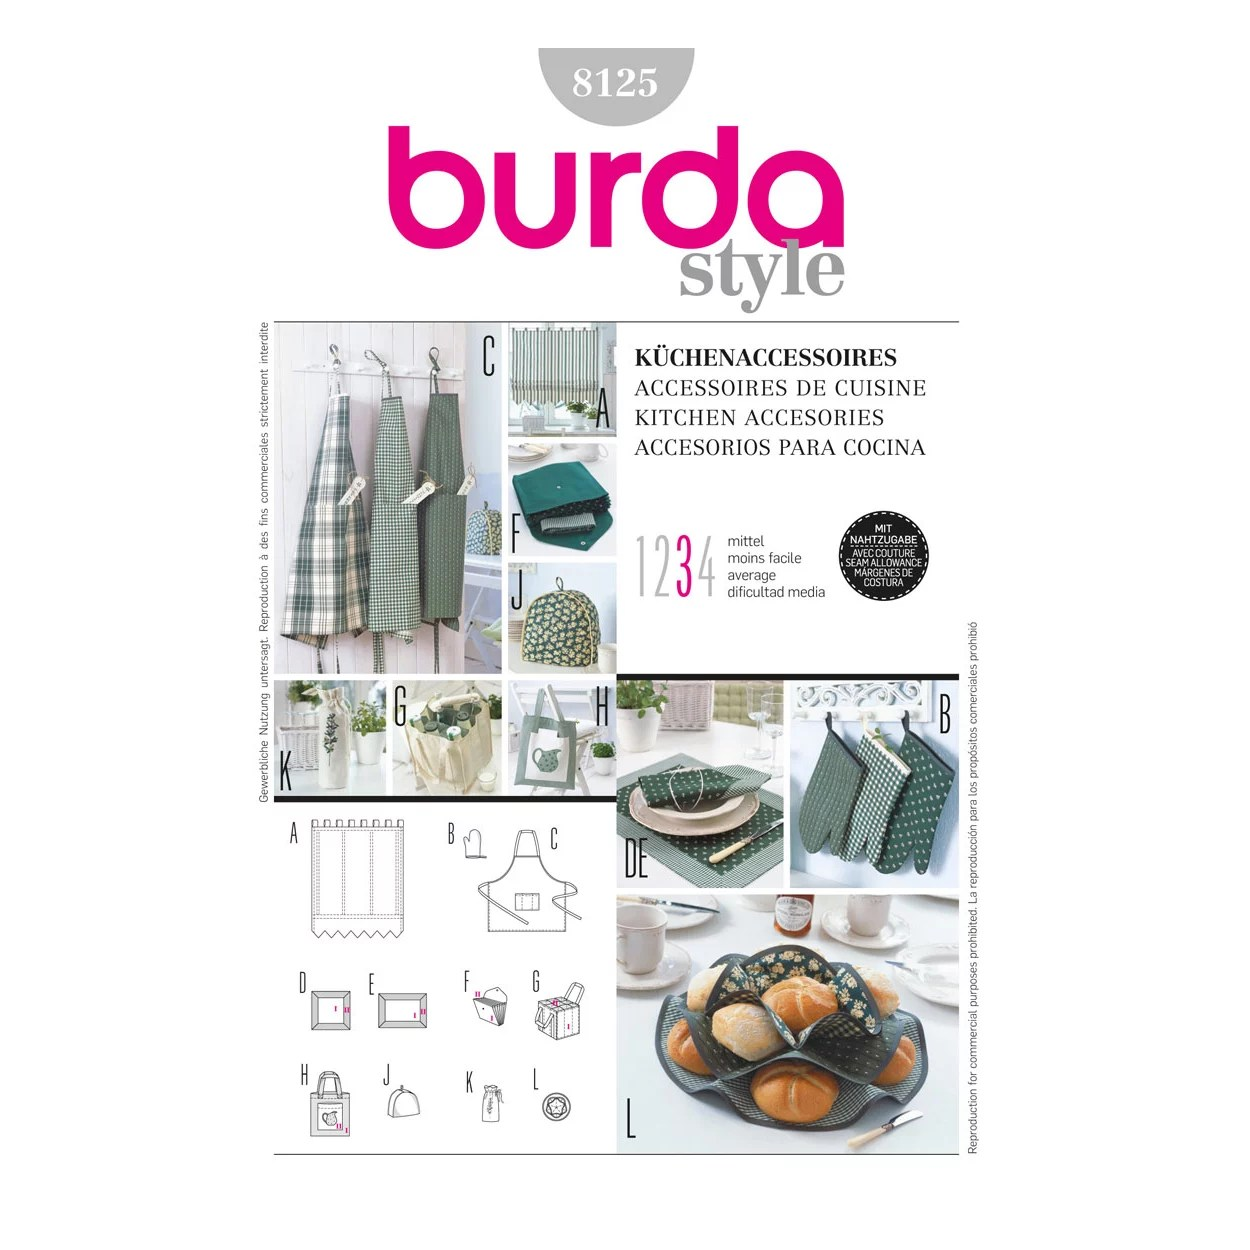 Küchenaccessoires Online Shop Burda Kitchen Accessories Sewing Pattern, 8125 At John Lewis & Partners